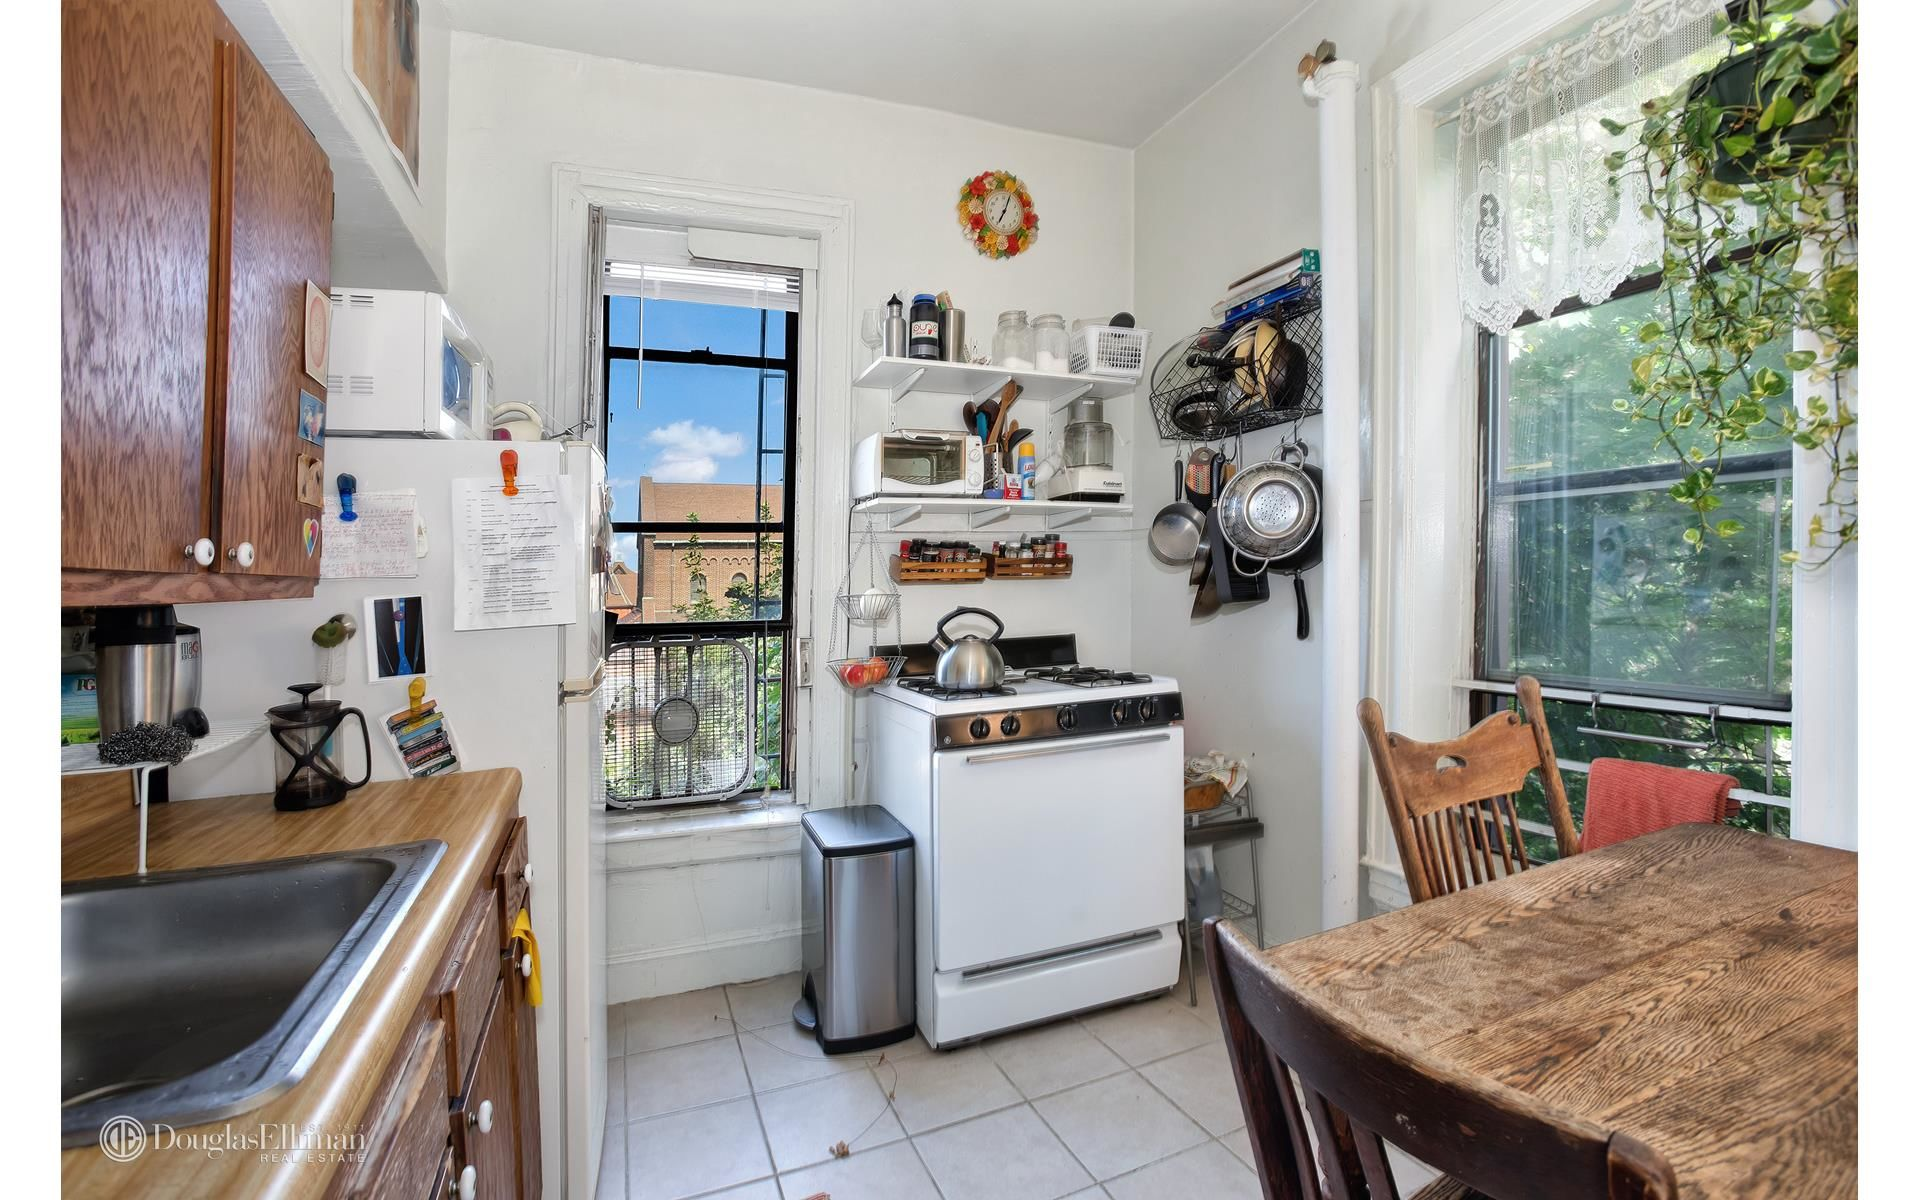 51 Irving Pl, APT 7R Photo 2 - ELLIMAN-3906333